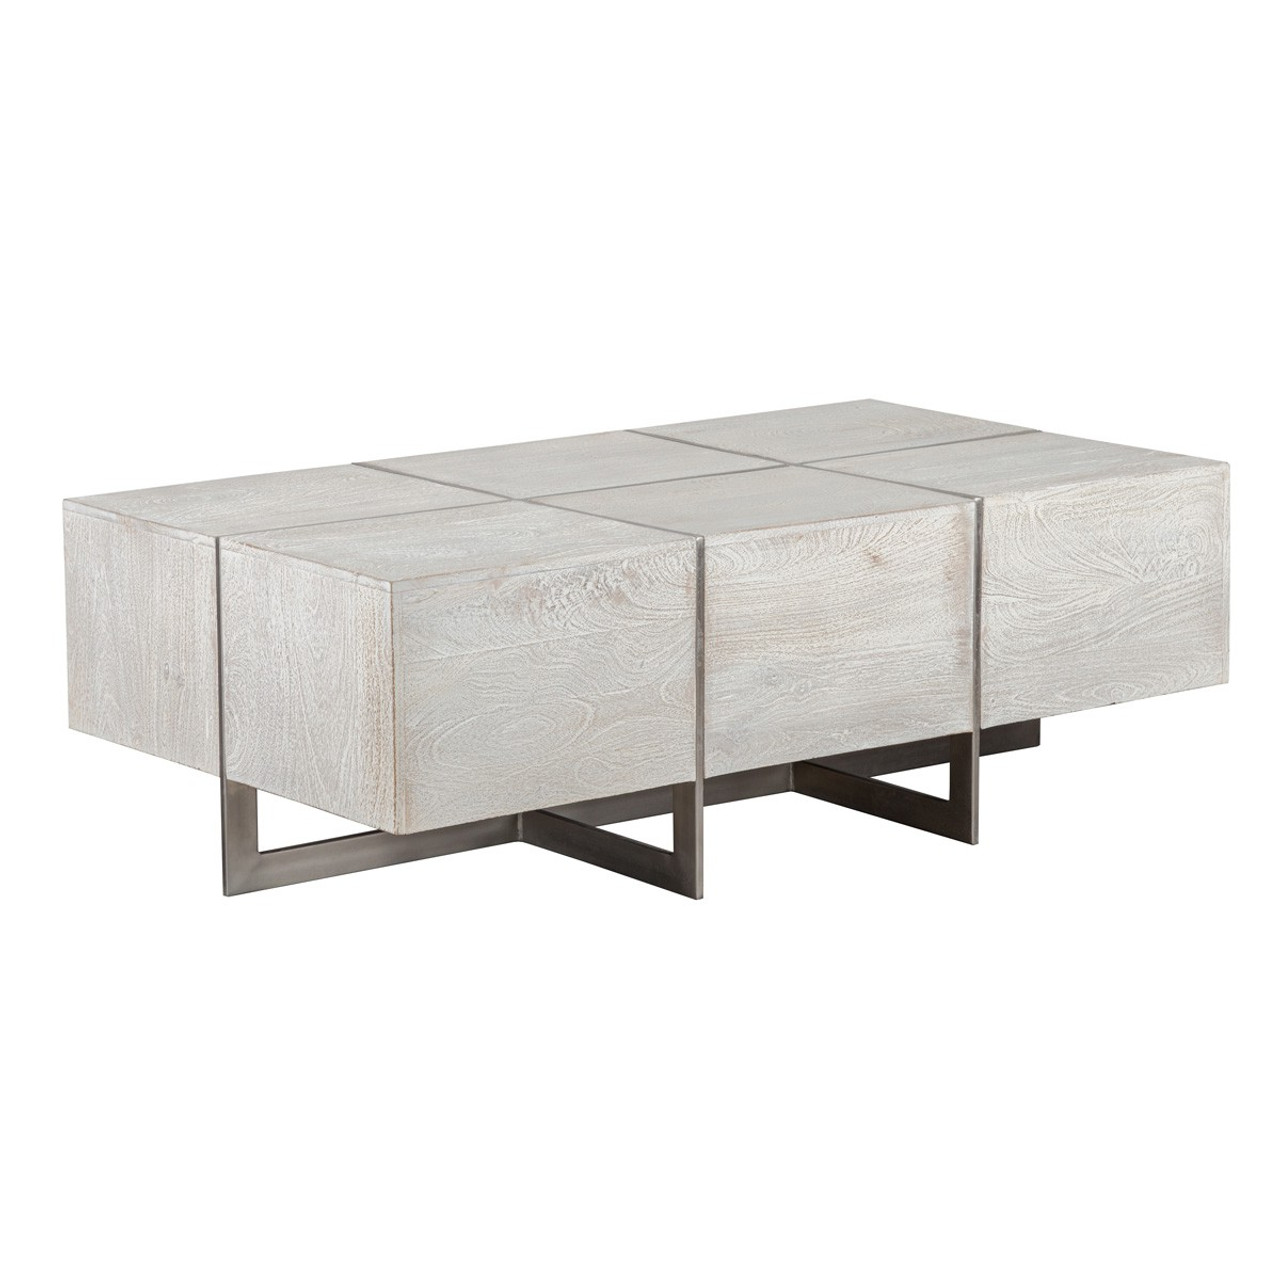 - Uptown Whitewashed Solid Wood + Iron Leg Coffee Table 54